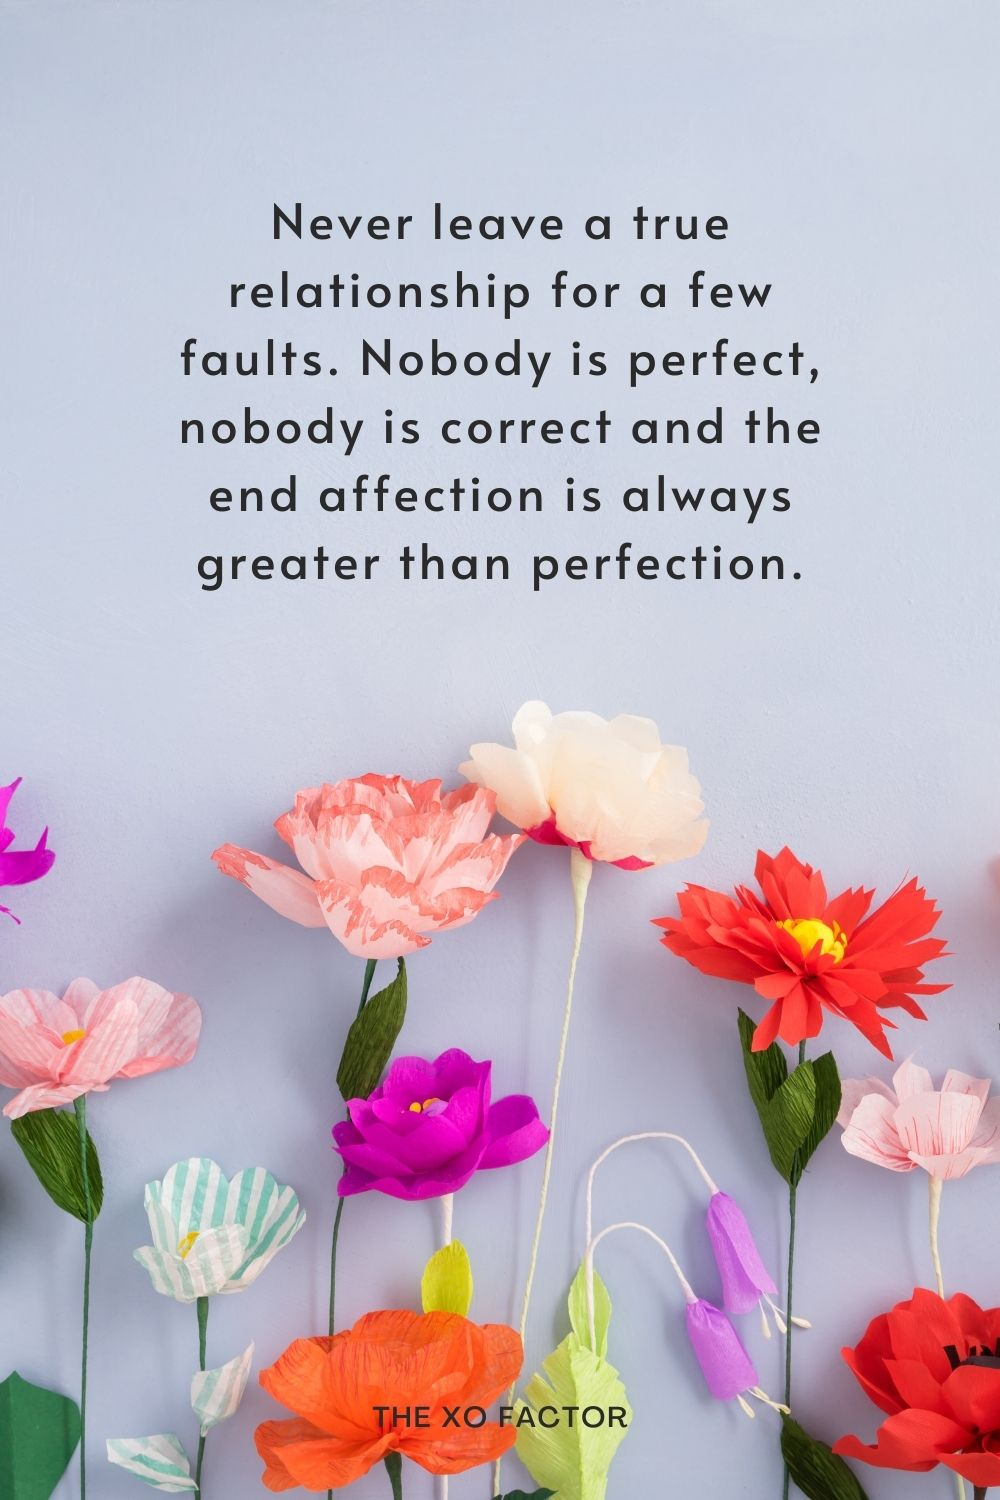 Never leave a true relationship for a few faults. Nobody is perfect, nobody is correct and the end affection is always greater than perfection.